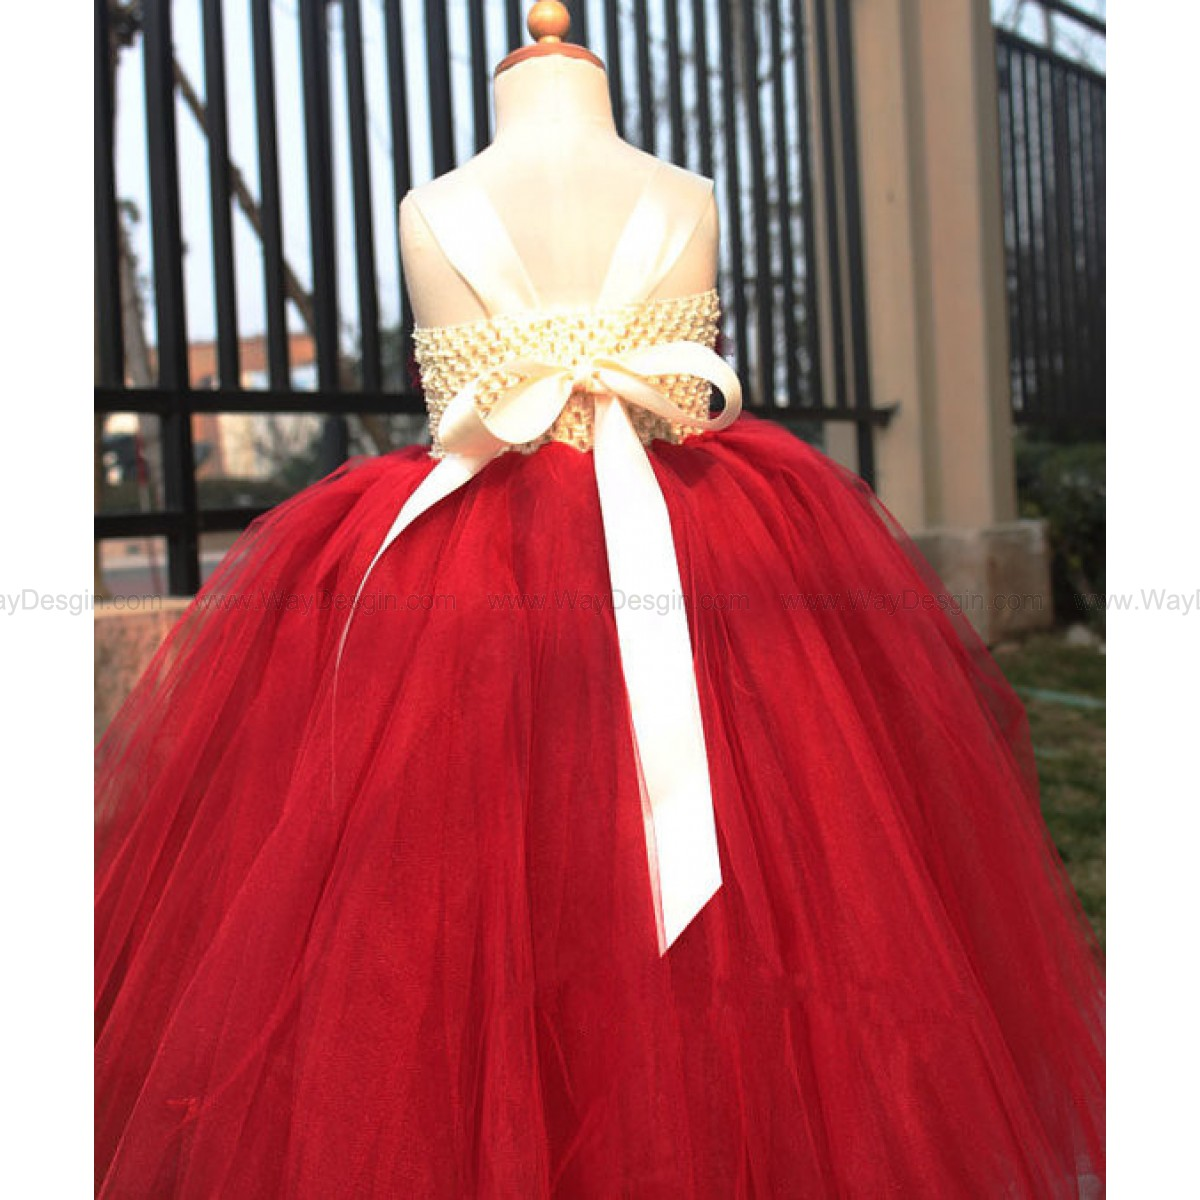 Find the best selection of cheap burgundy tutu dress in bulk here at vanduload.tk Including hot tutu dress and white lace tutu dress at wholesale prices from burgundy tutu dress manufacturers. Source discount and high quality products in hundreds of categories wholesale direct from China.